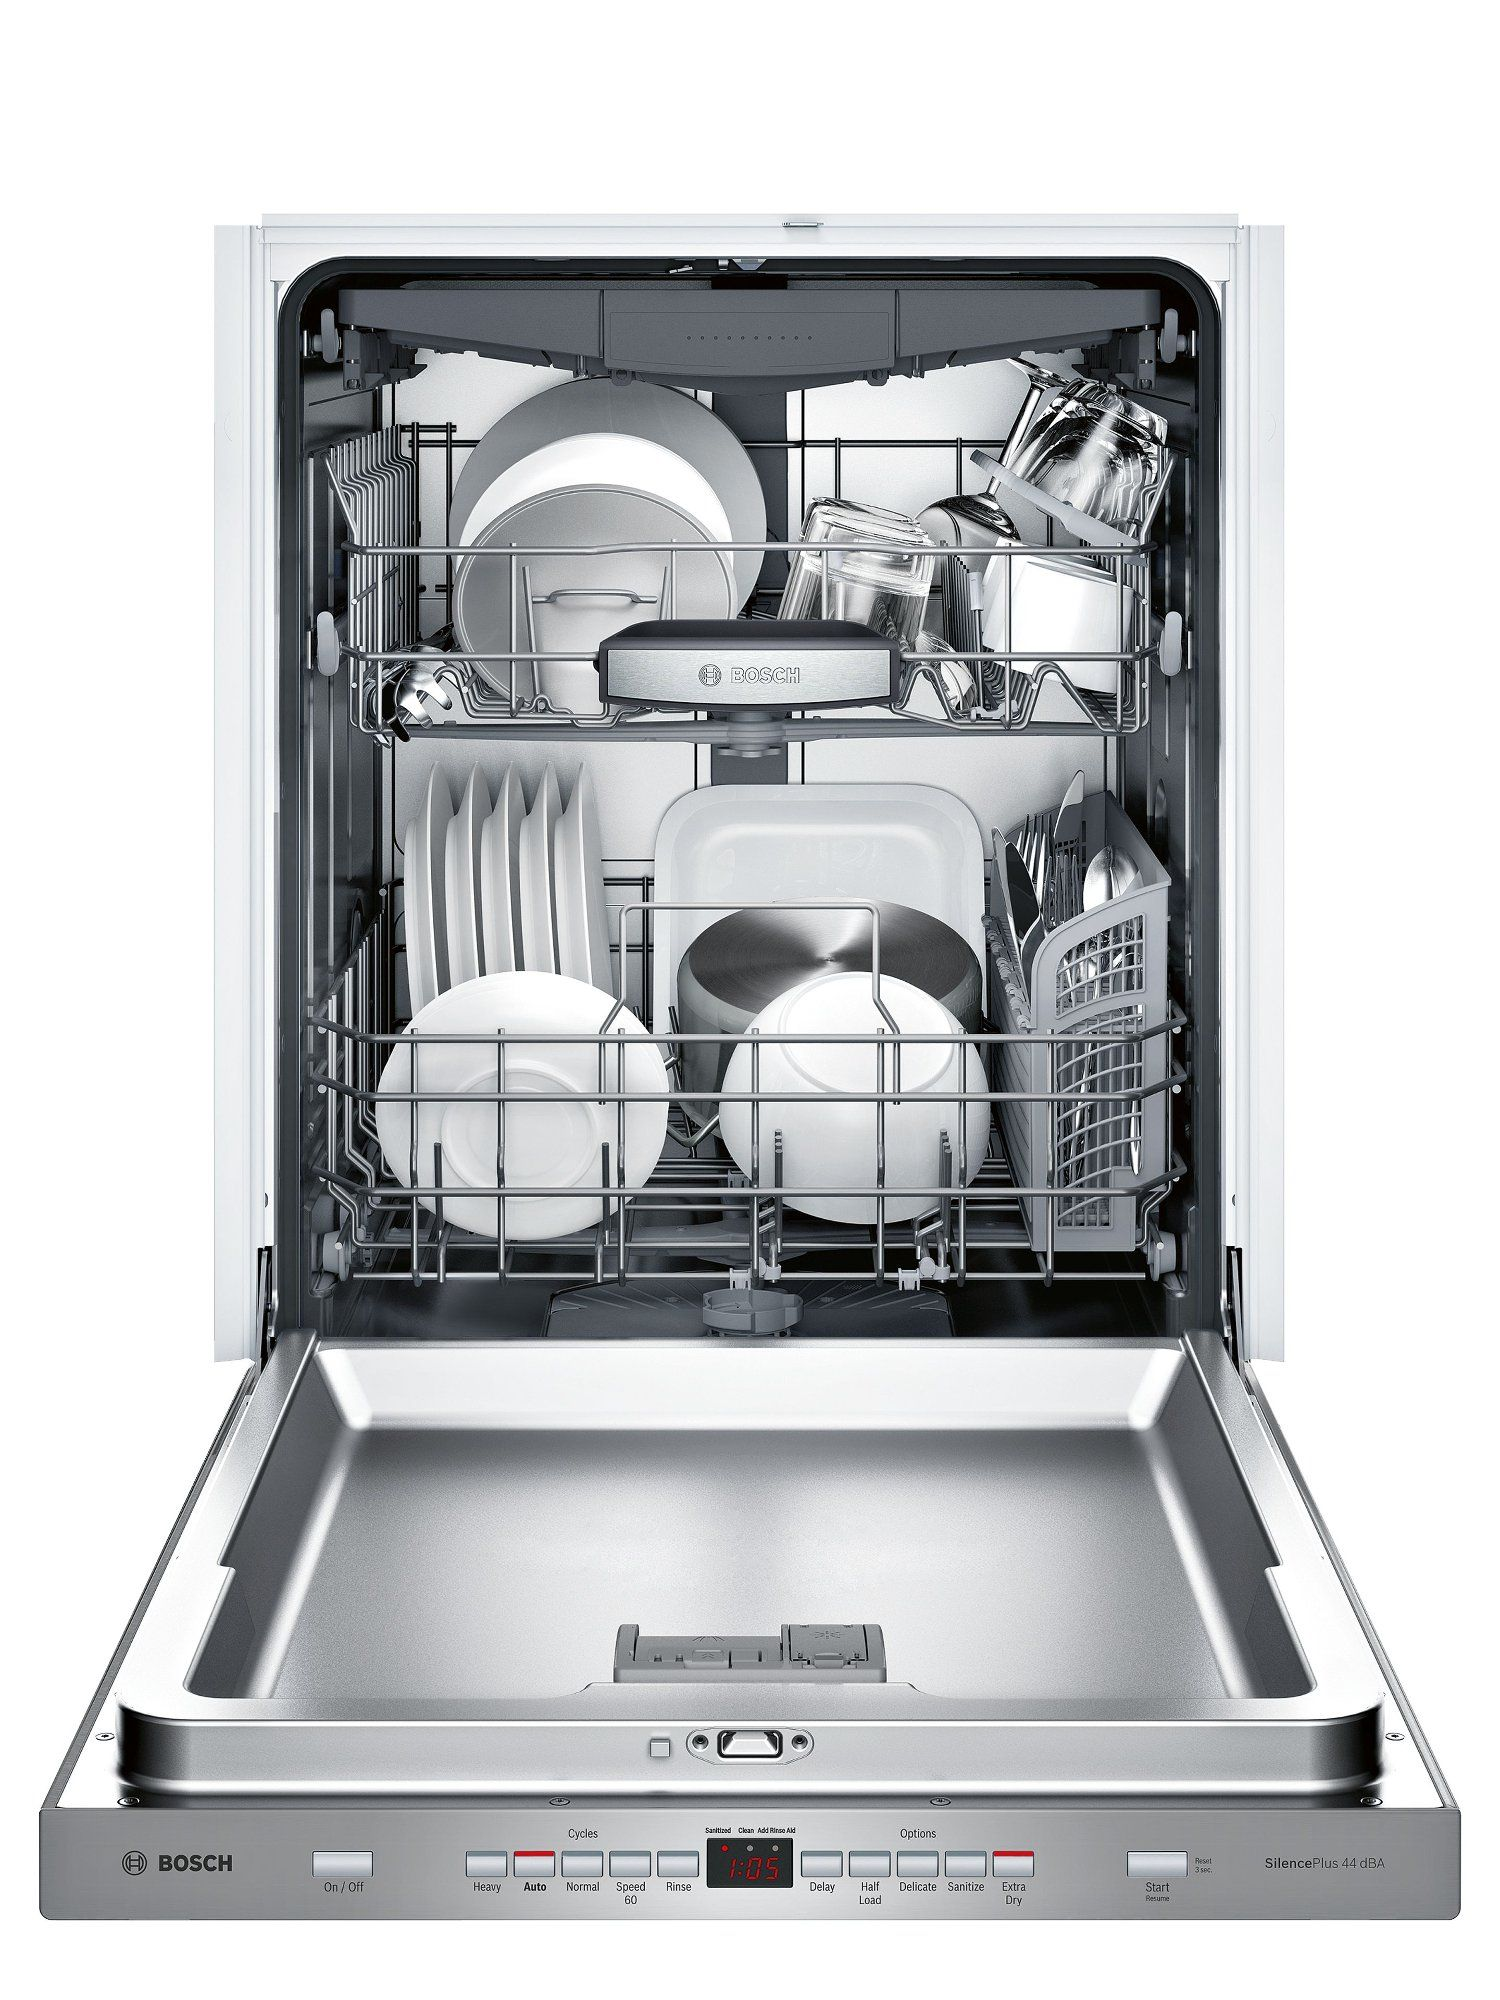 Bosch 500 Series Dishwasher With Infolight 24 Inch Stainless Steel Stainless Steel Dishwasher Built In Dishwasher Integrated Dishwasher